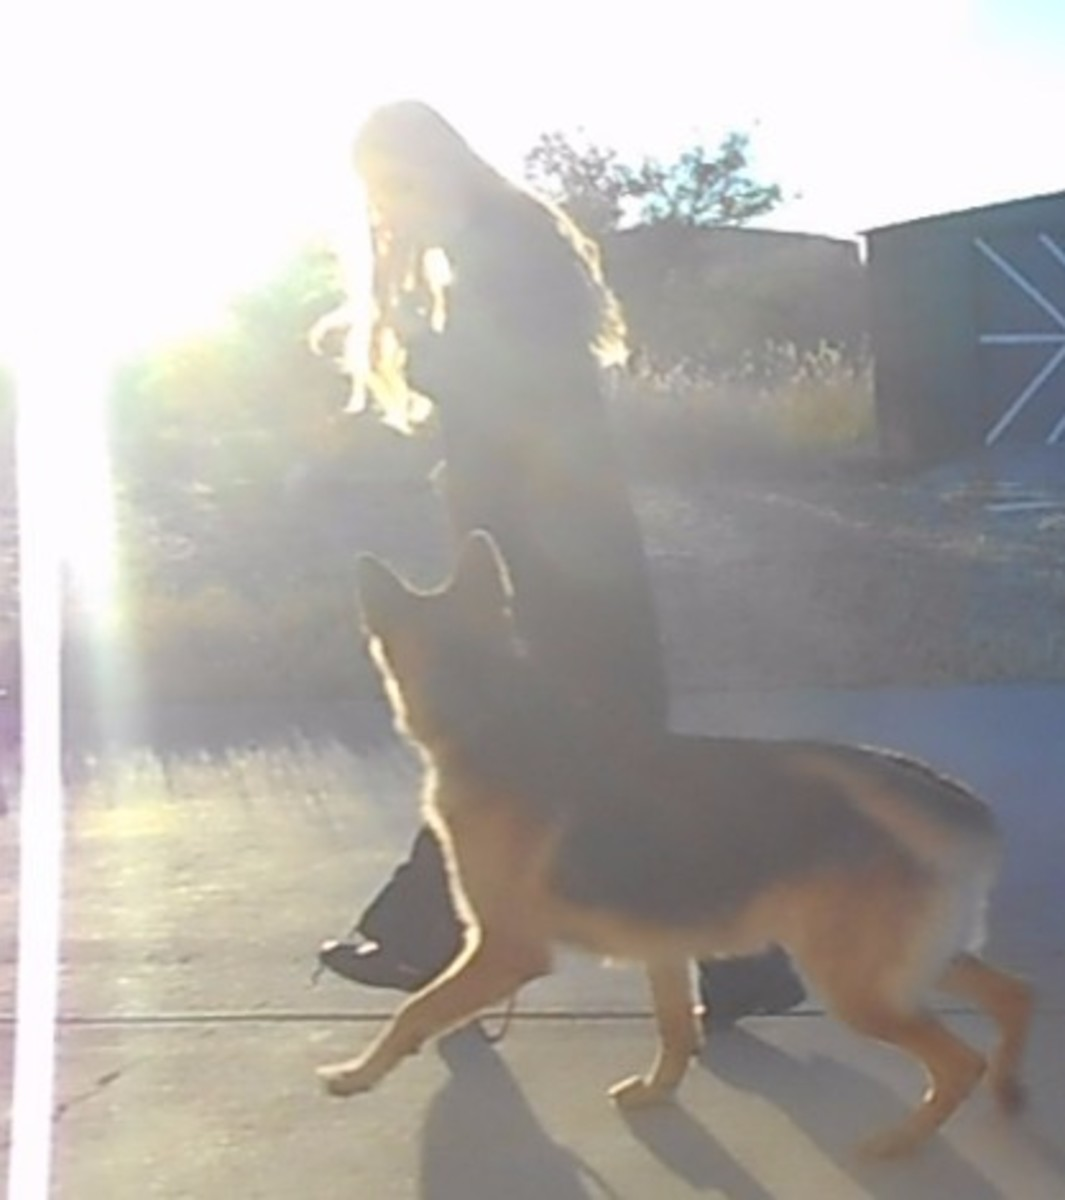 Attention heeling can help your dog walk by distractions without pulling.